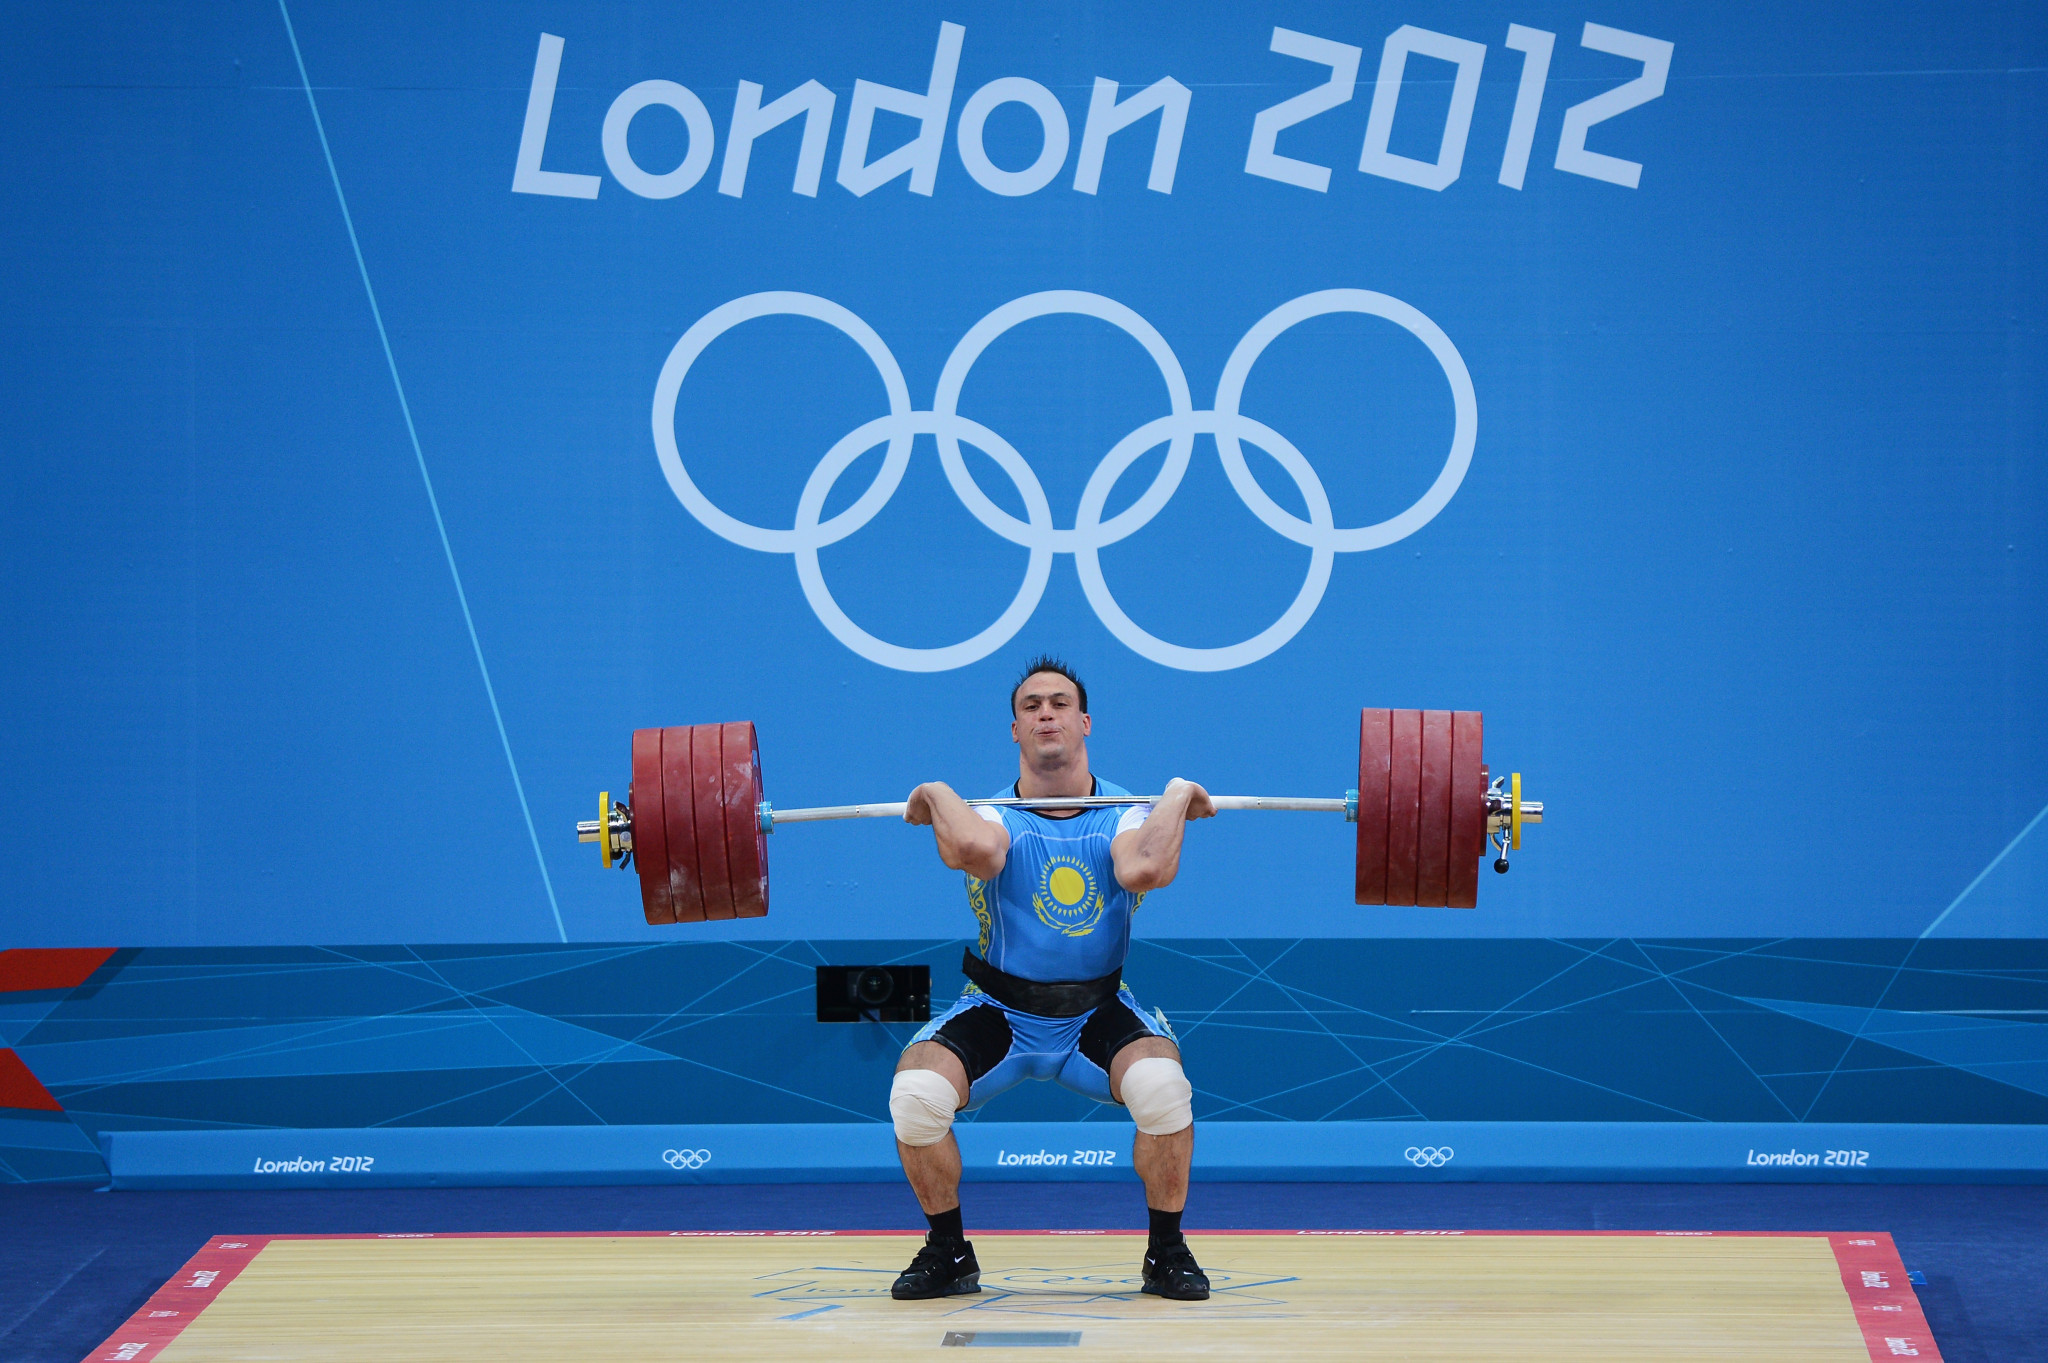 Ilya Ilyin - seen as a national hero in Kazakhstan, despite having to return his Olympic gold medals ©Getty Images